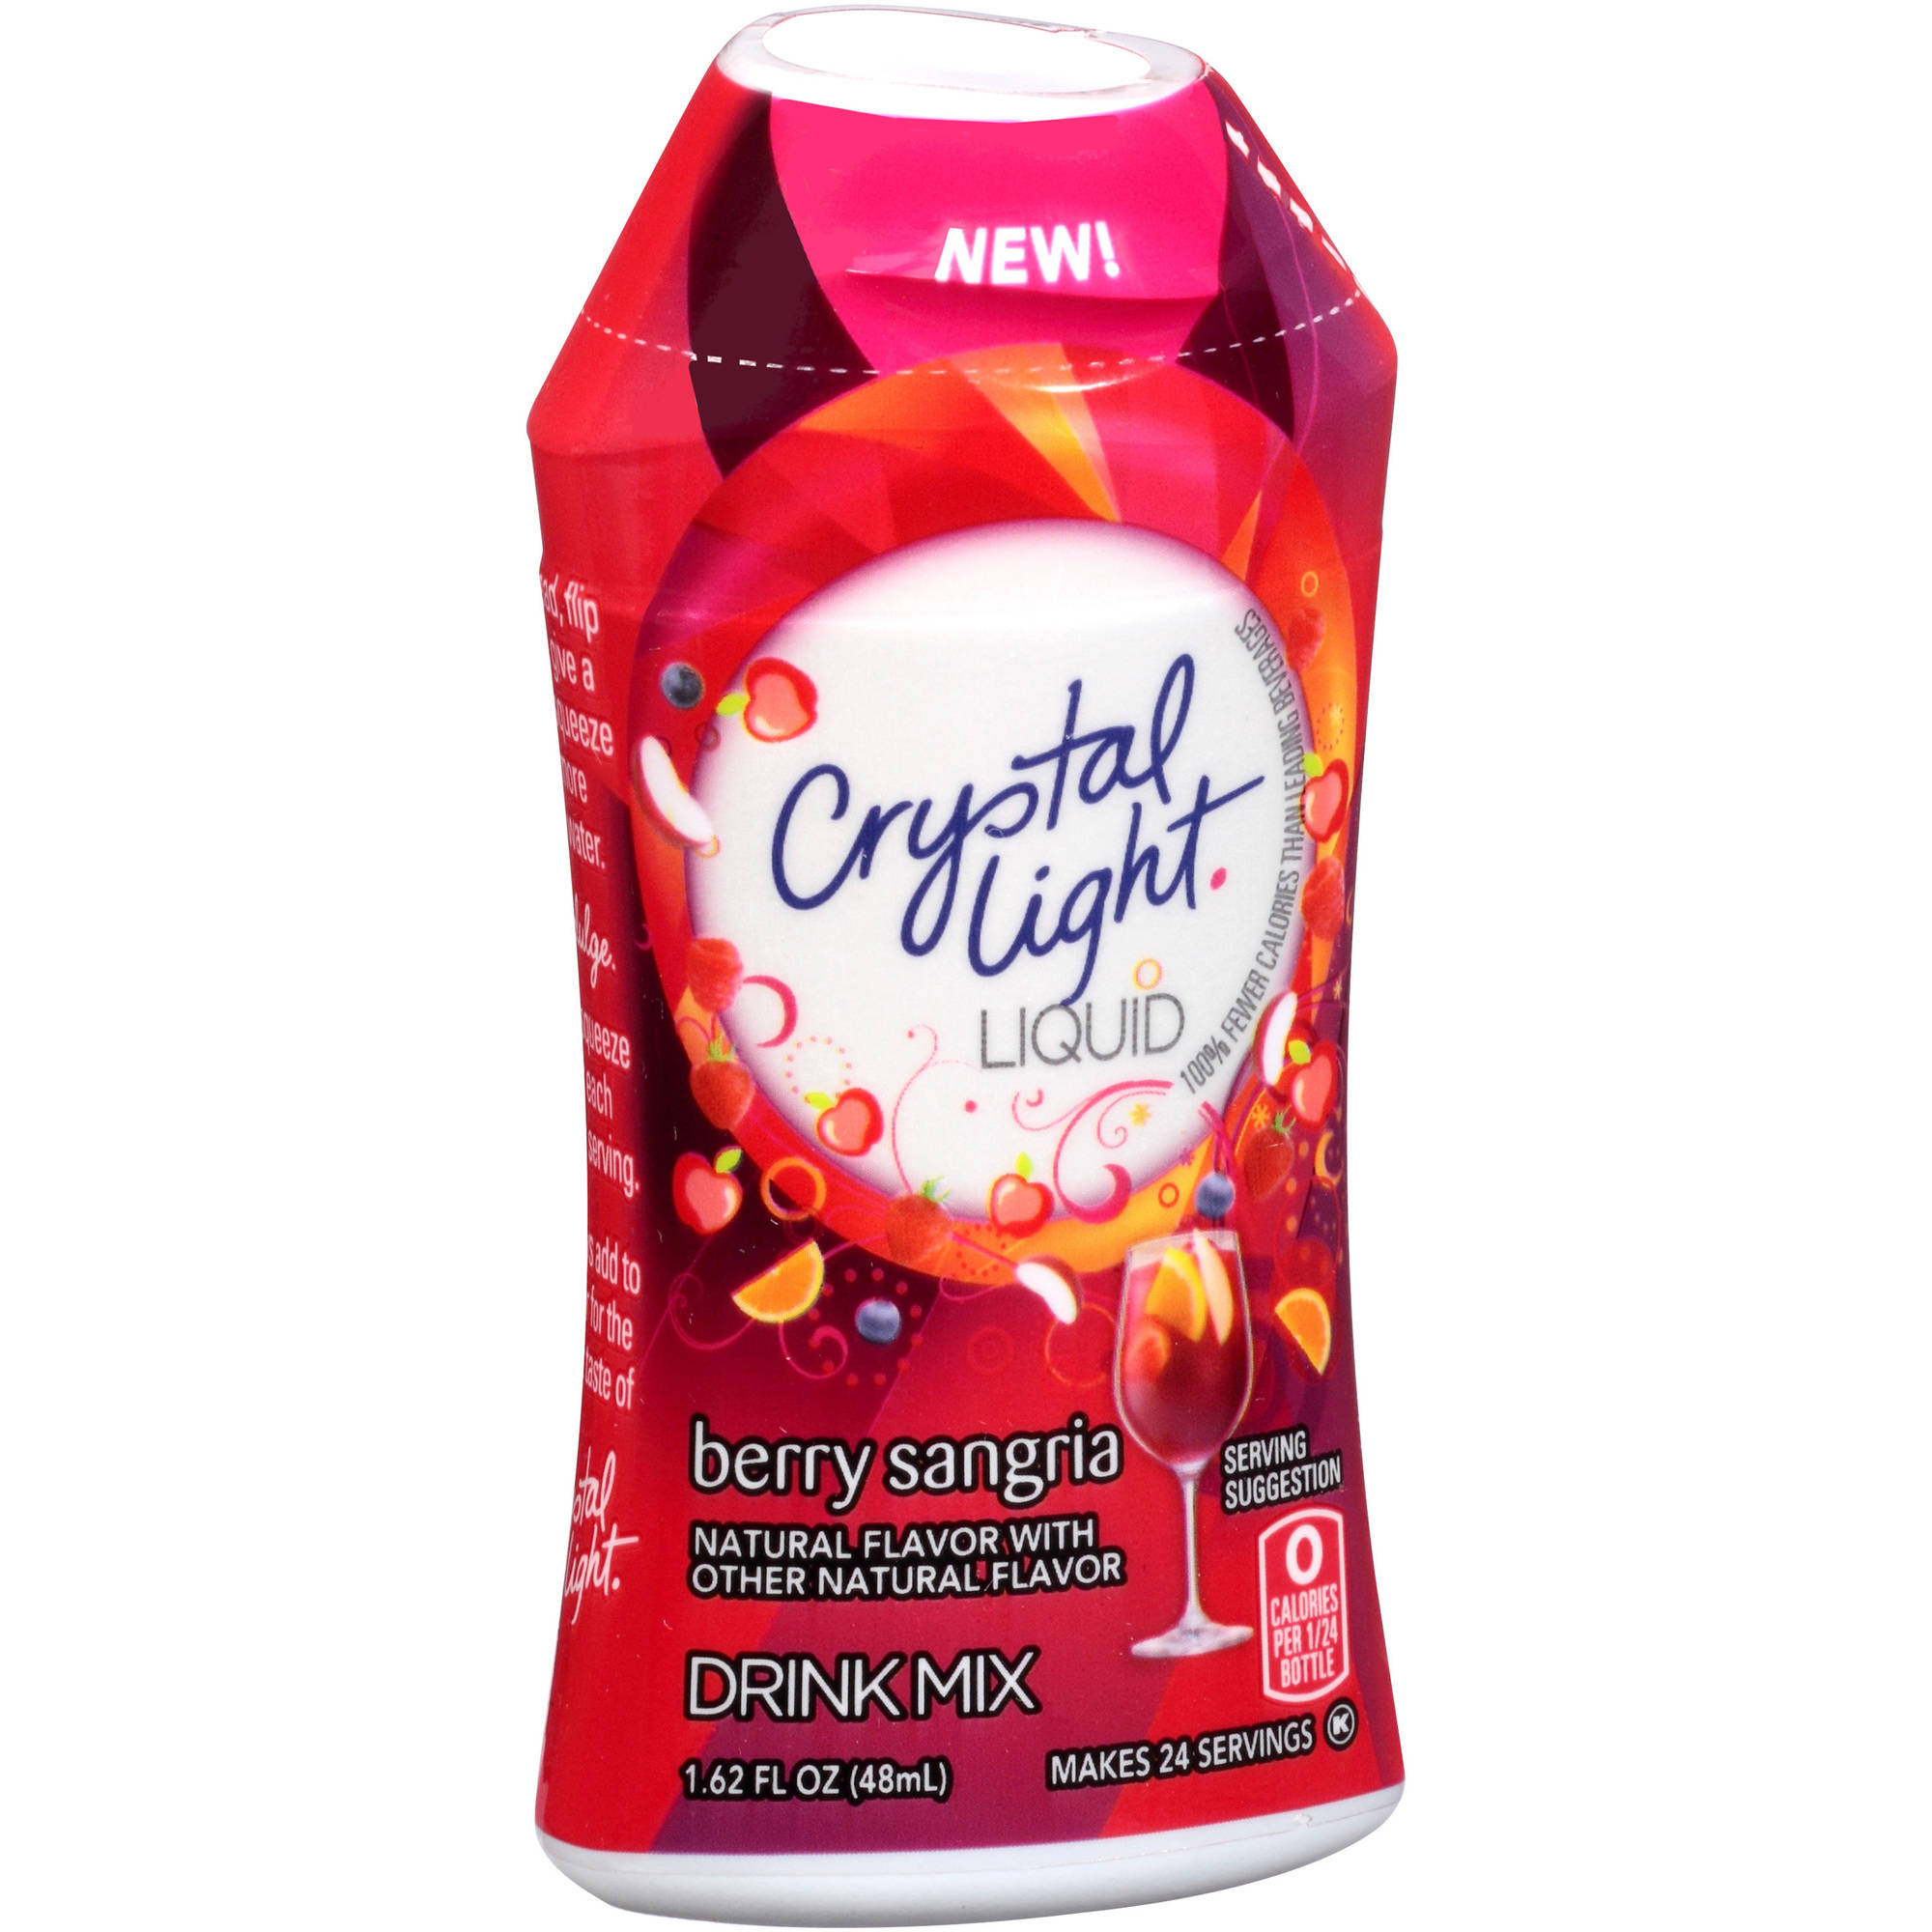 Crystal Light Liquid Berry Sangria Drink Mix, 1.62 fl oz